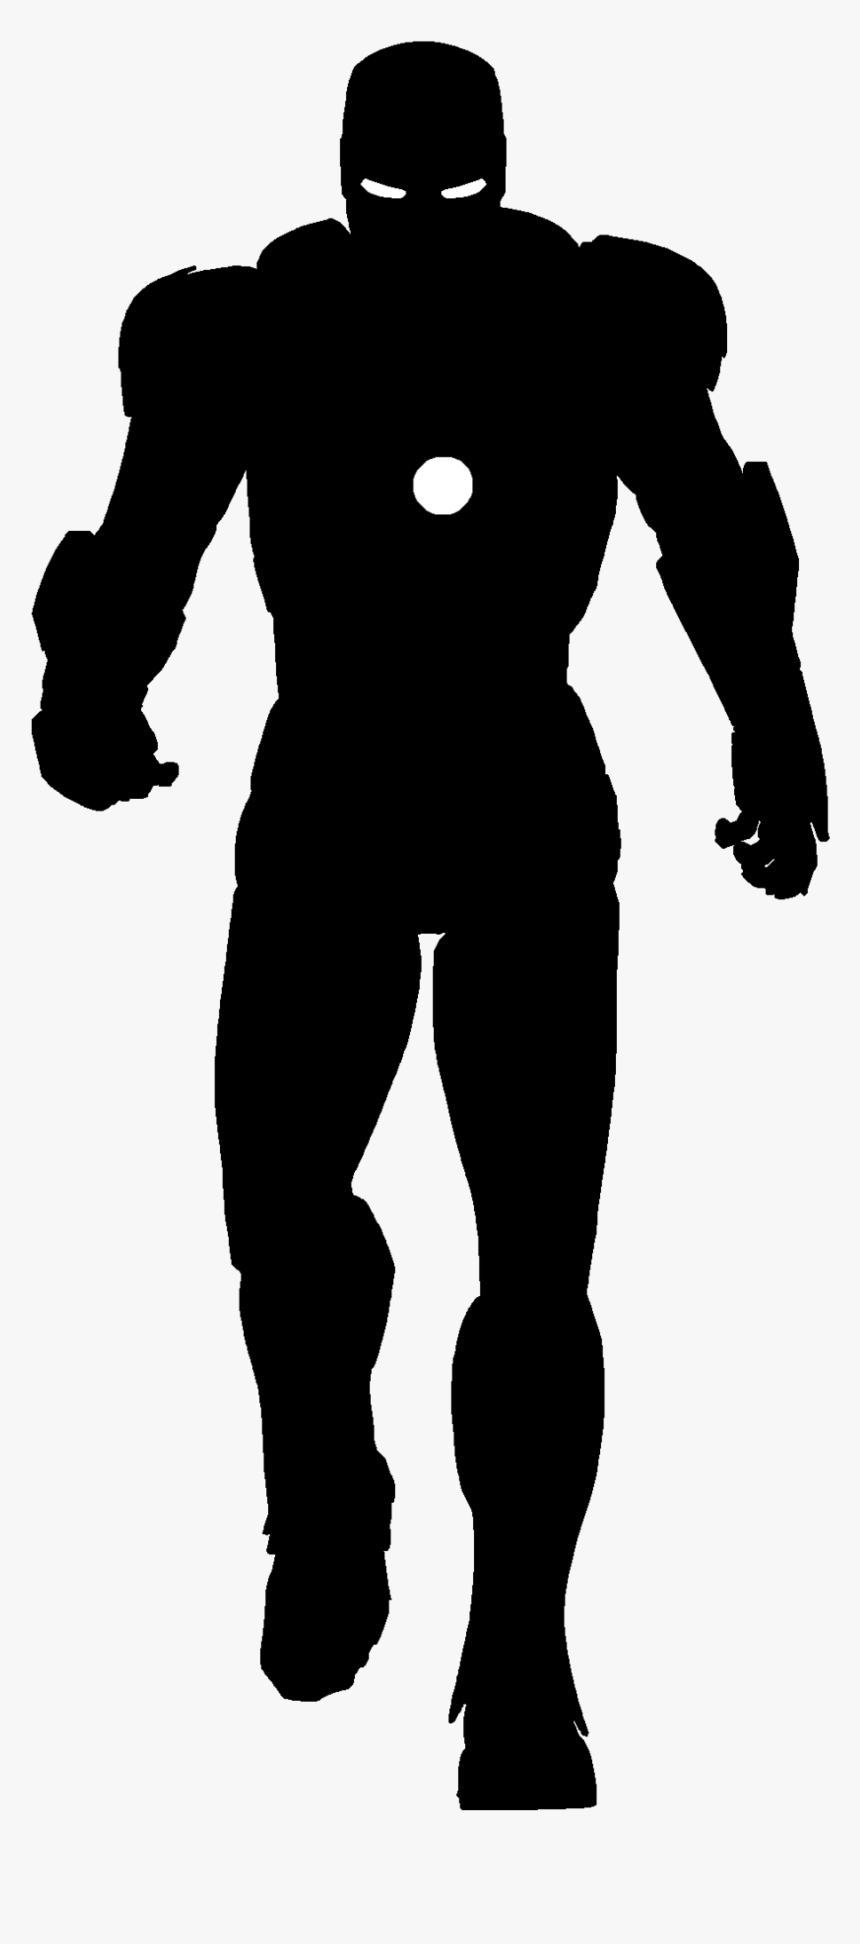 Iron Man Silhouette - Iron Man Silhouette Png, Transparent Png, Free Download